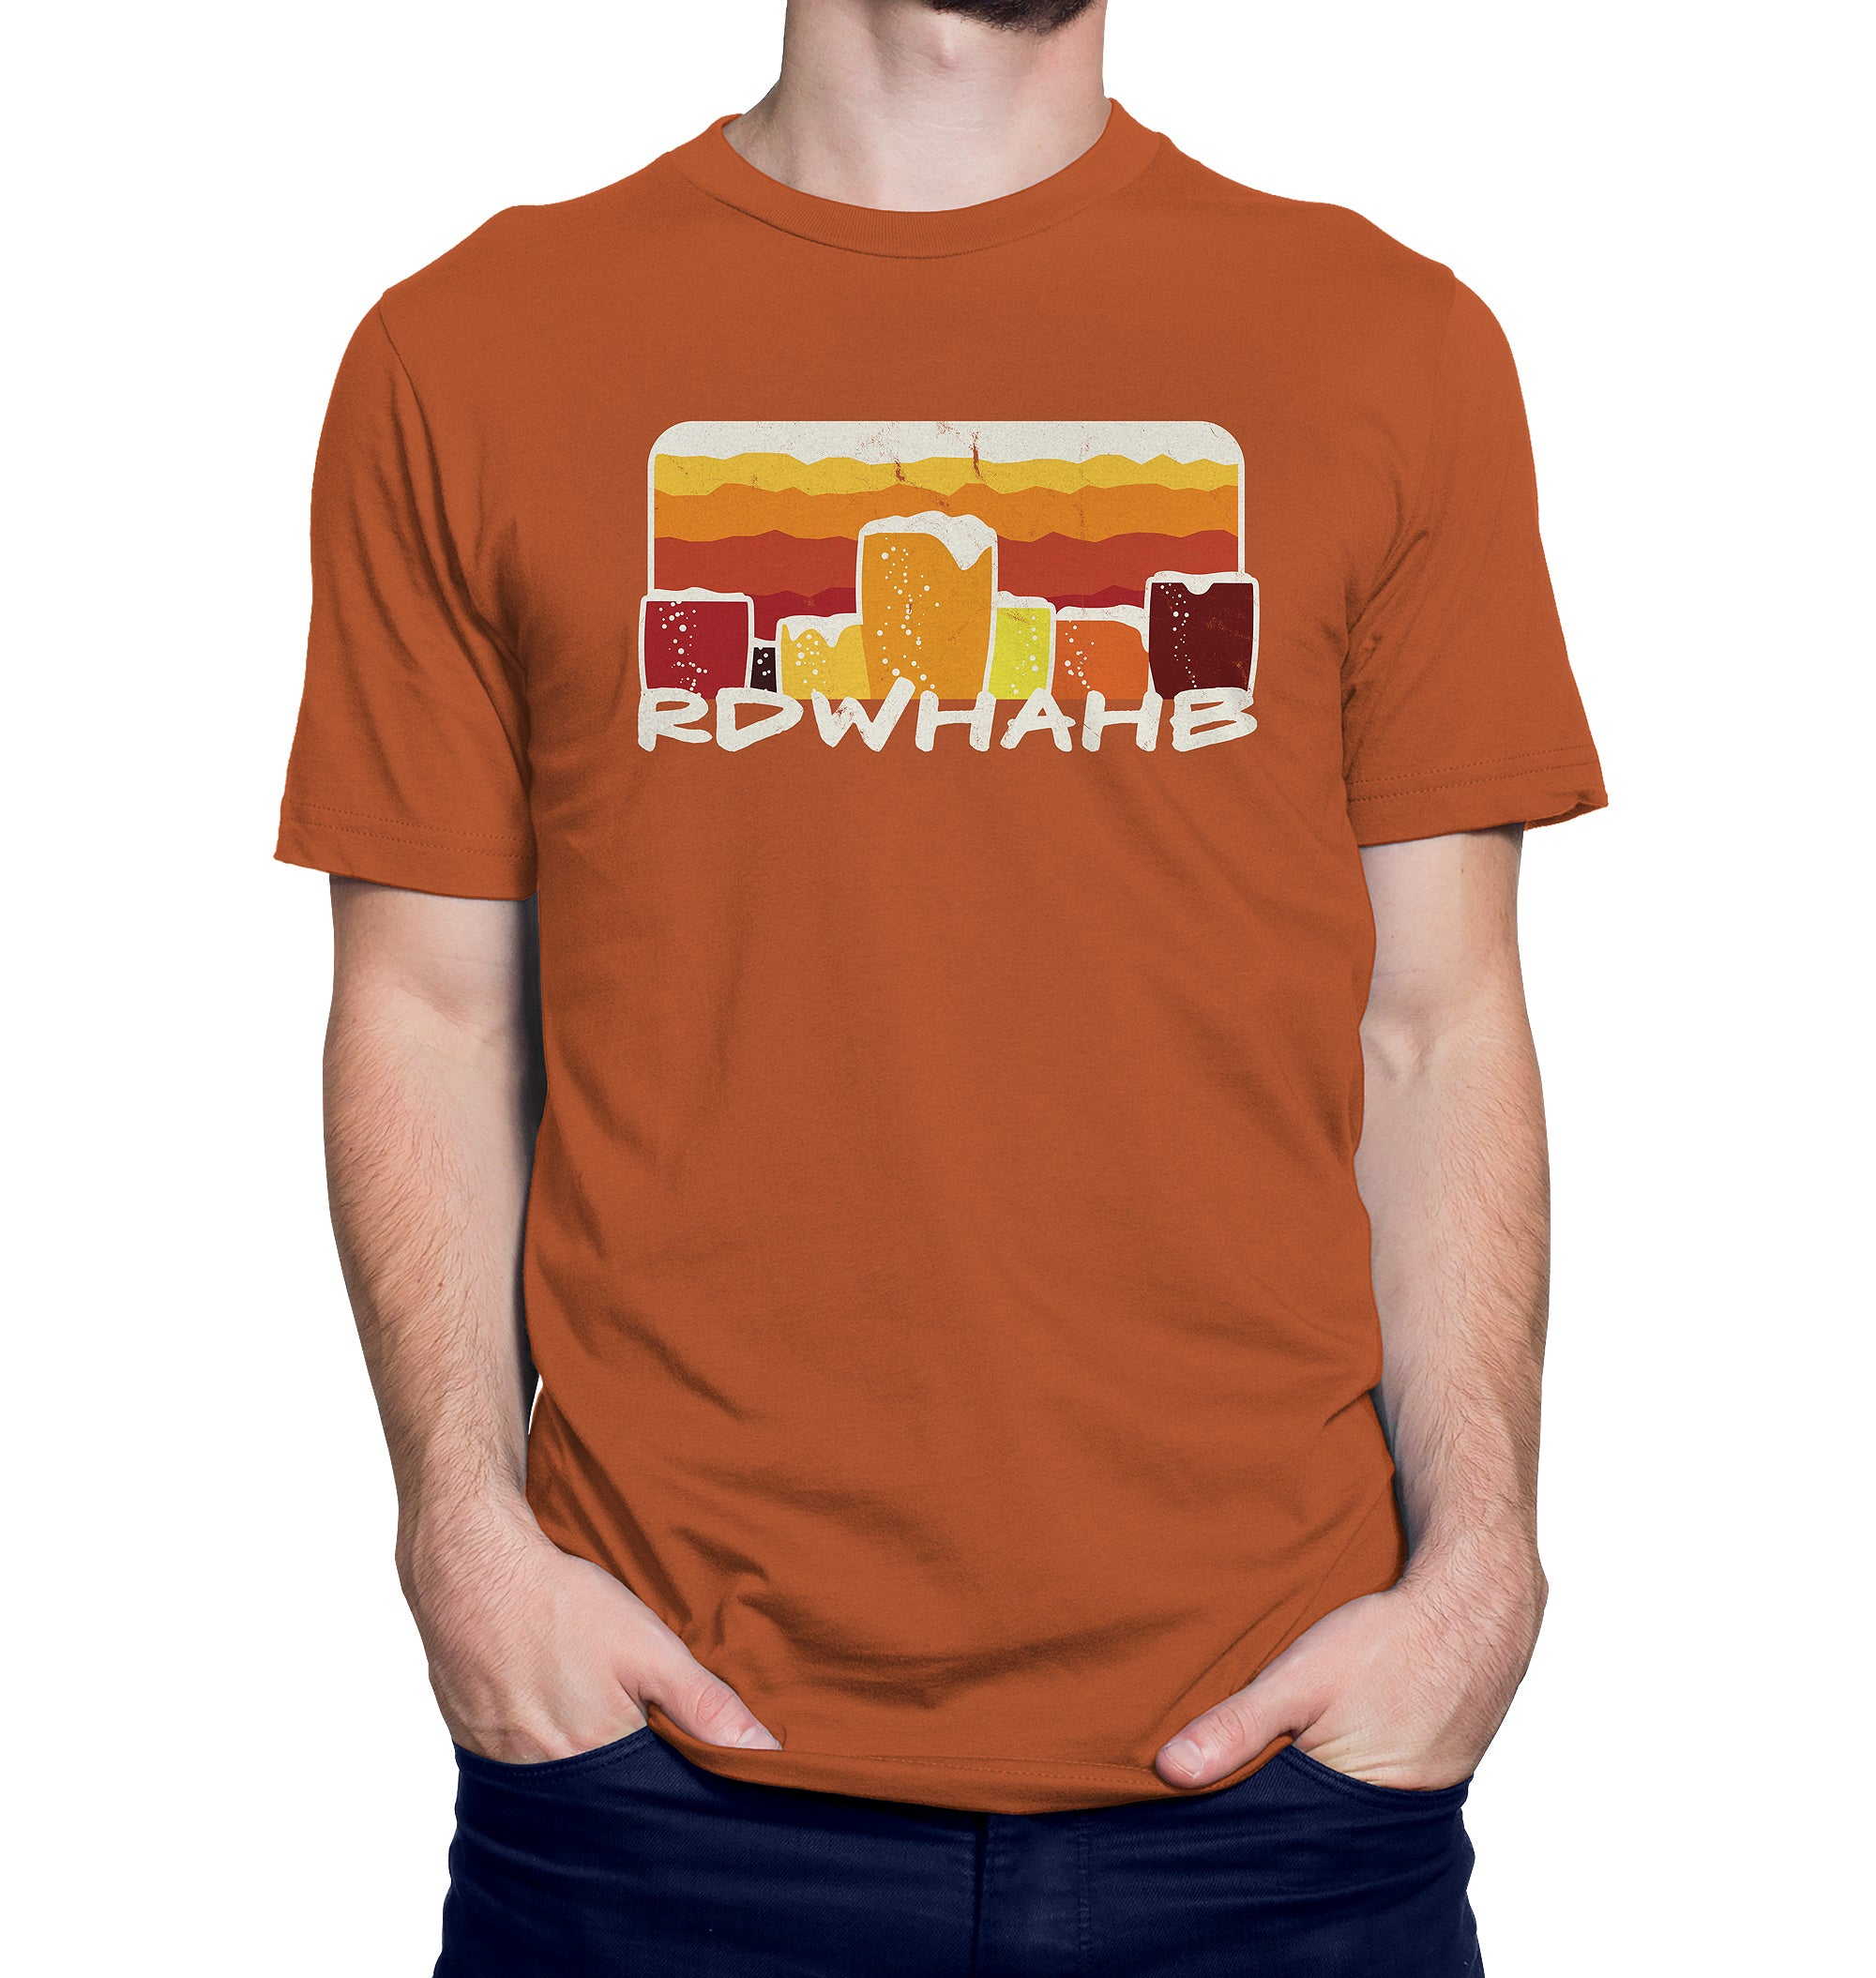 Relax, Don't Worry, Have a Homebrew T-Shirt on Model